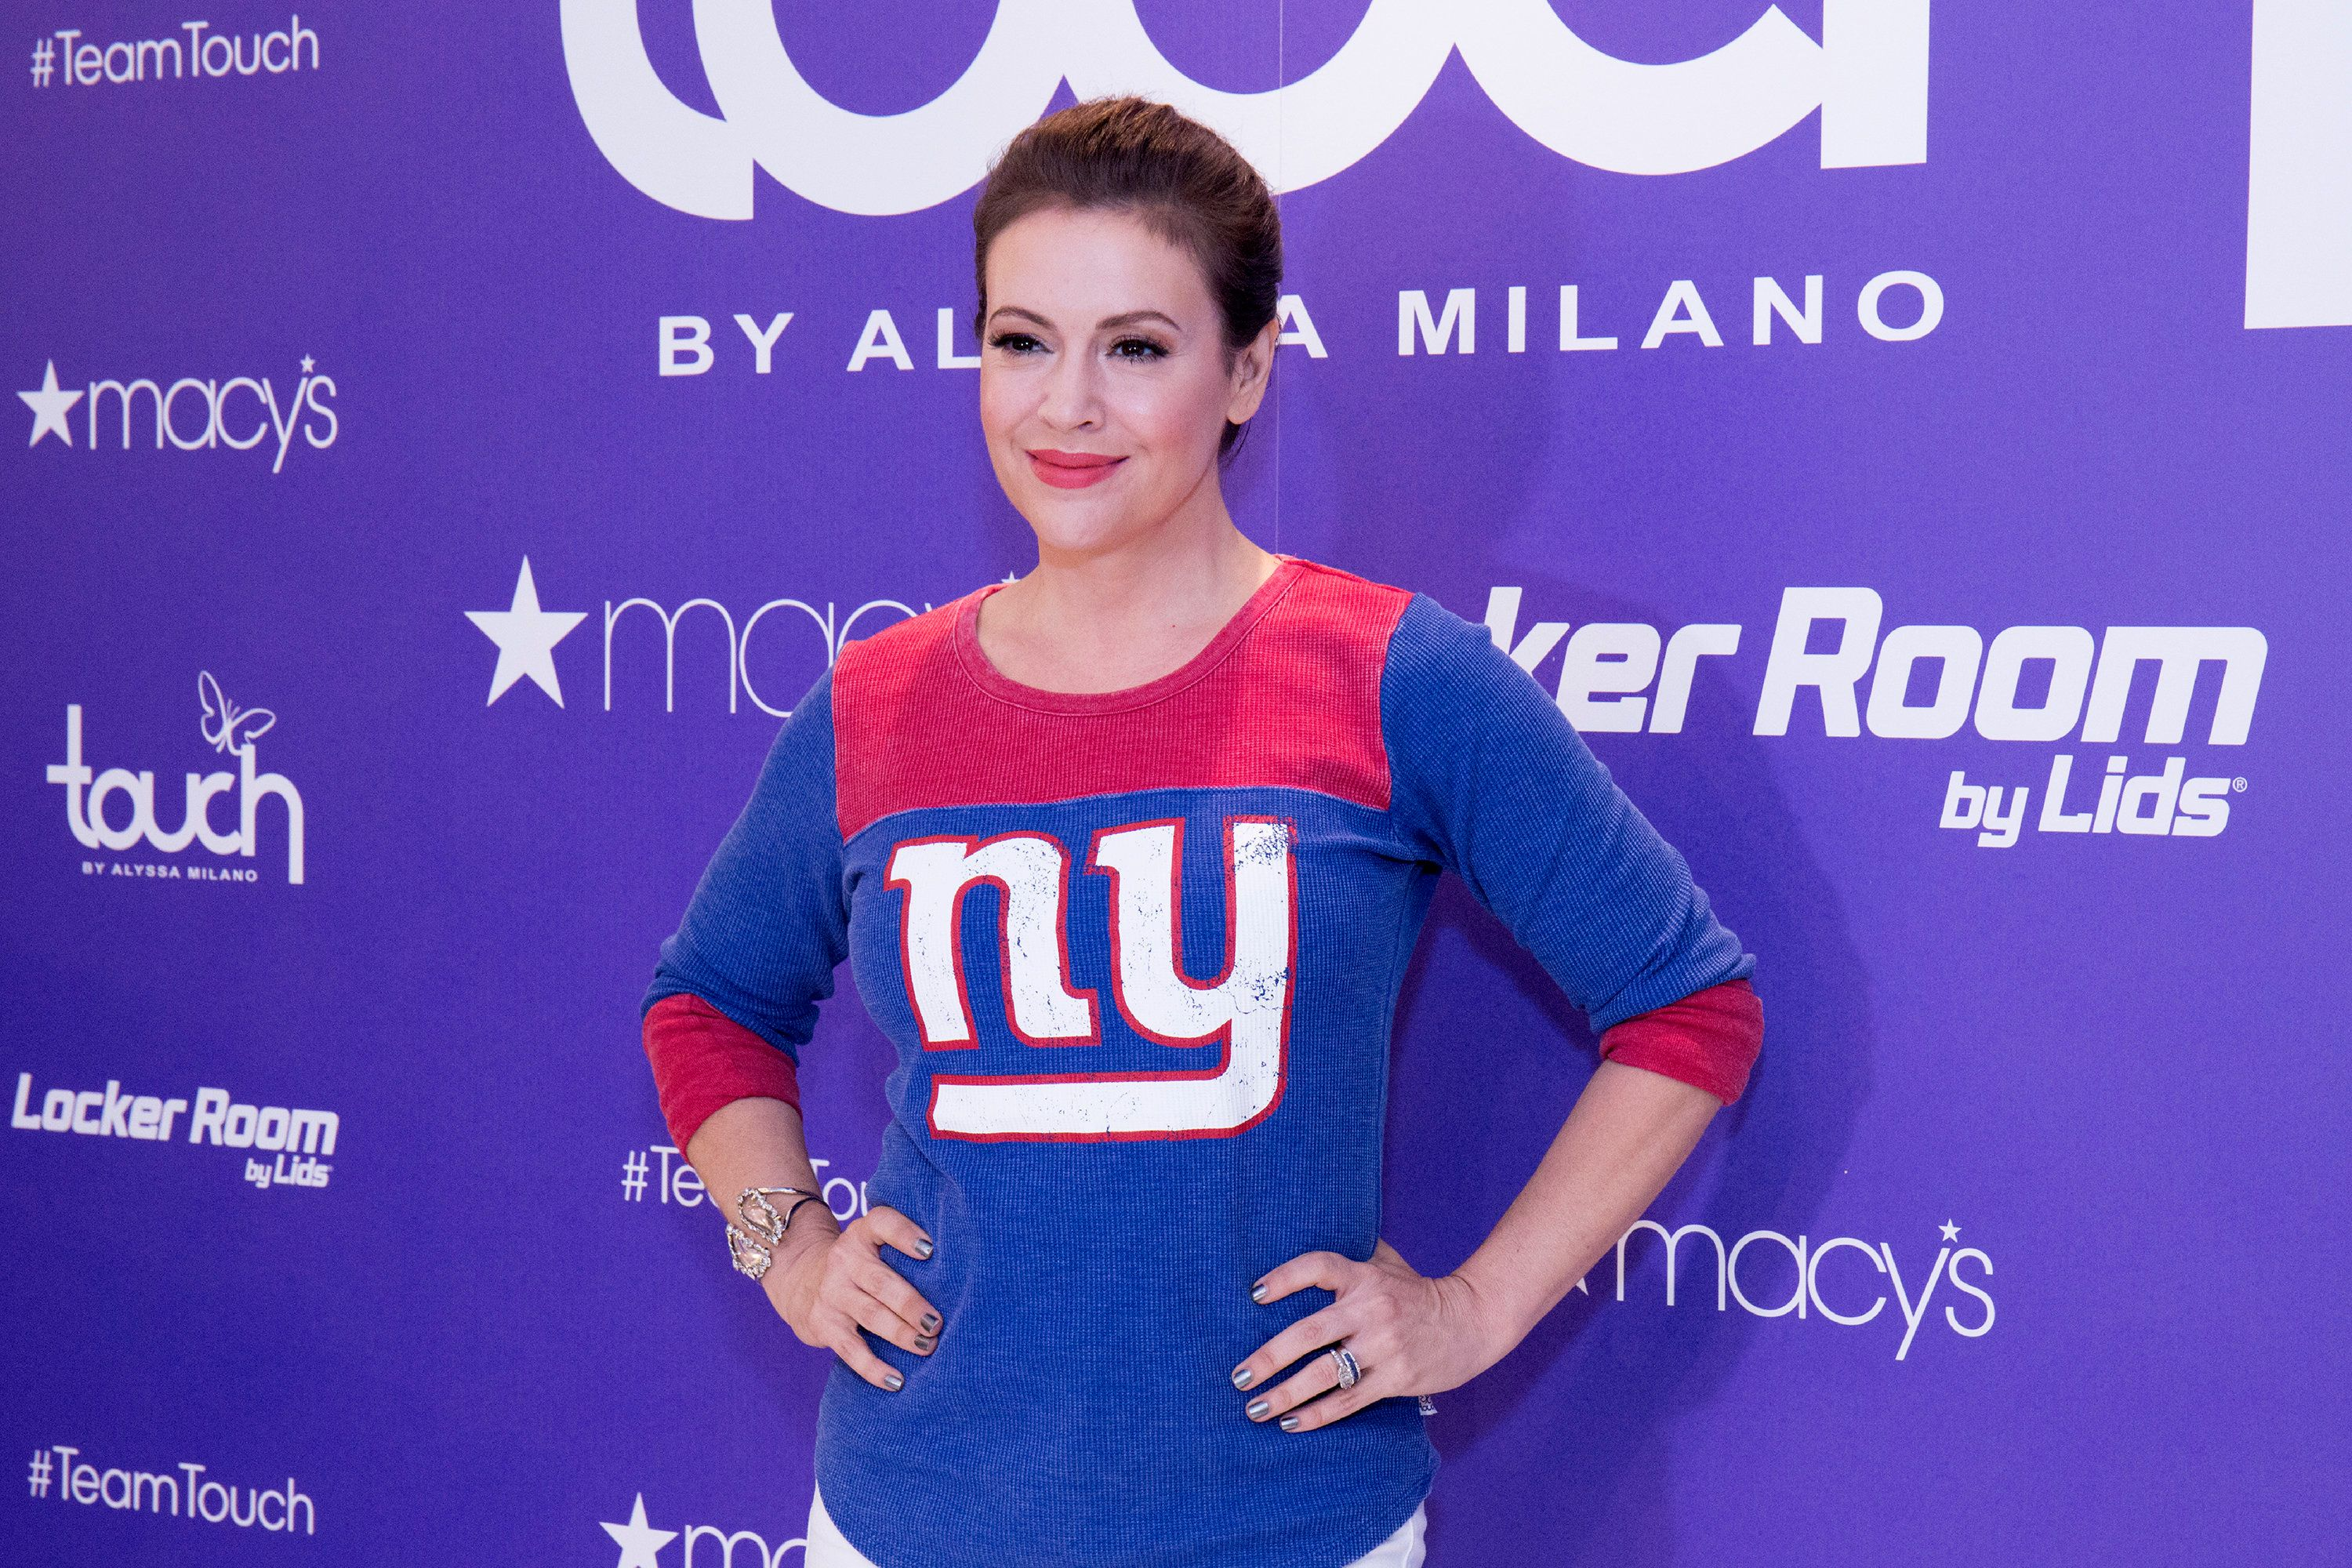 NEW YORK, NY - AUGUST 23:  Alyssa Milano poses for photos during 'Touch By Alyssa Milano' Launch at Macy's Herald Square on August 23, 2017 in New York City.  (Photo by Santiago Felipe/Getty Images)